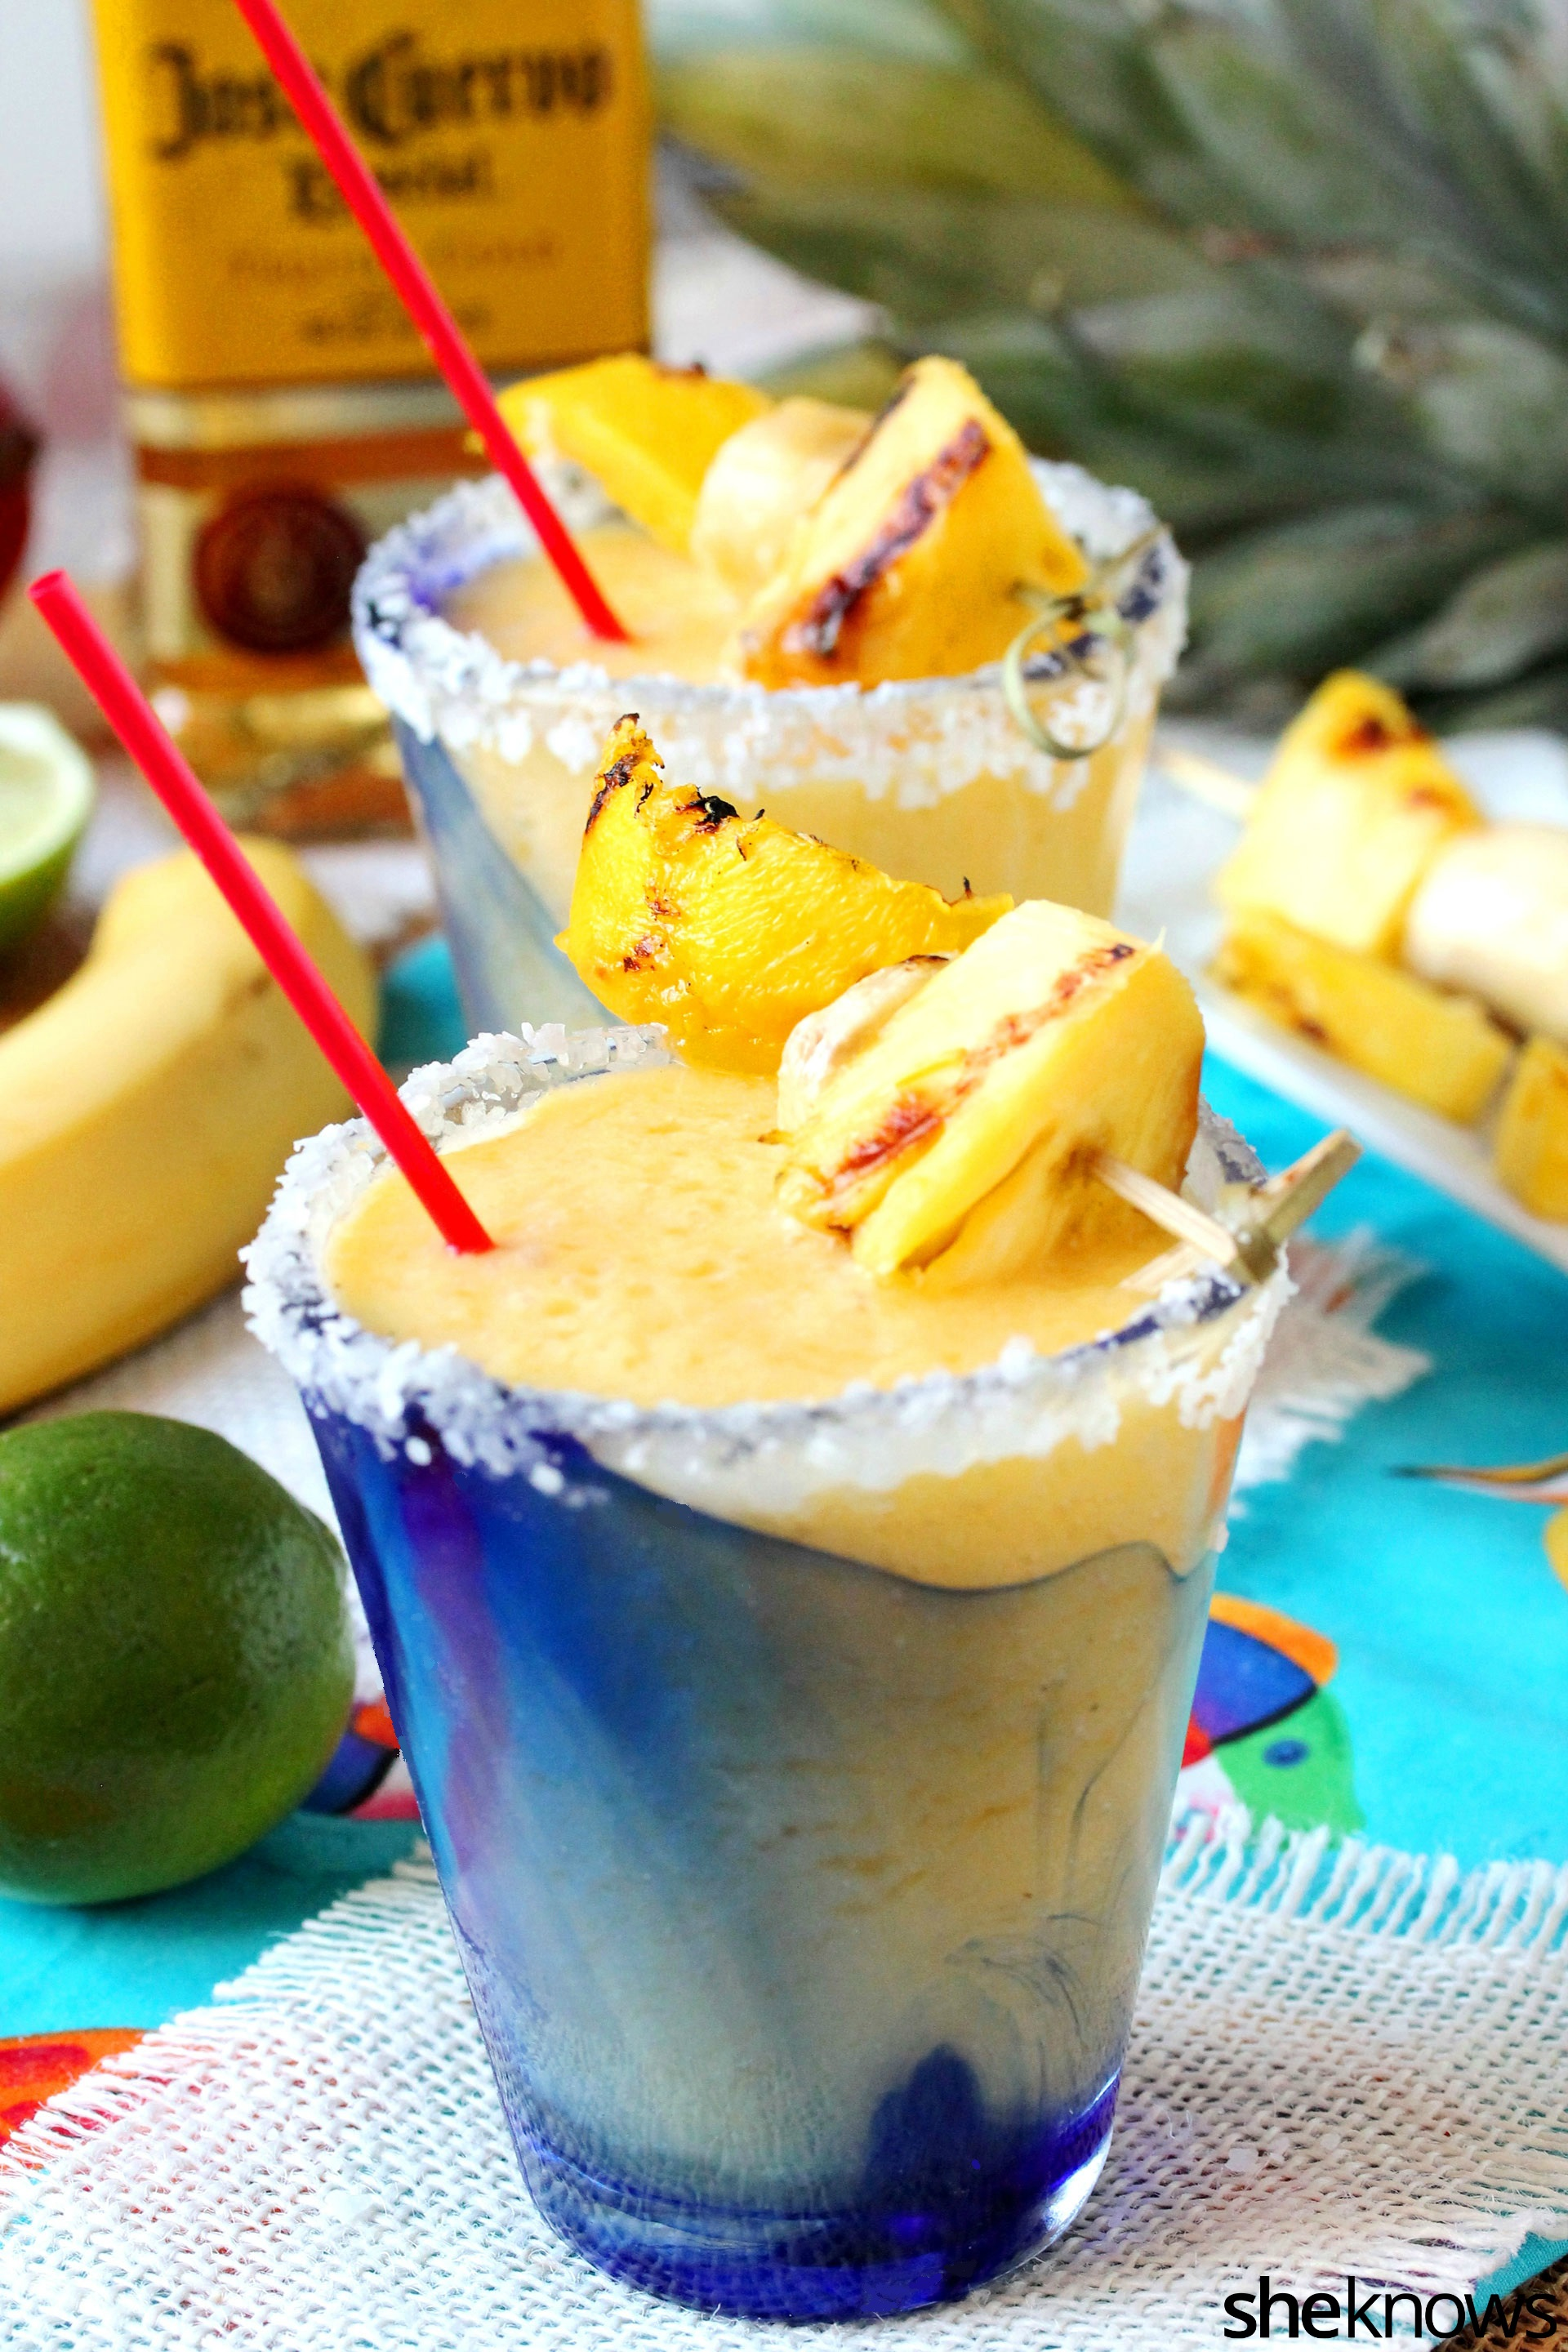 You deserve this grilled tropical margarita with a slight smoky twist